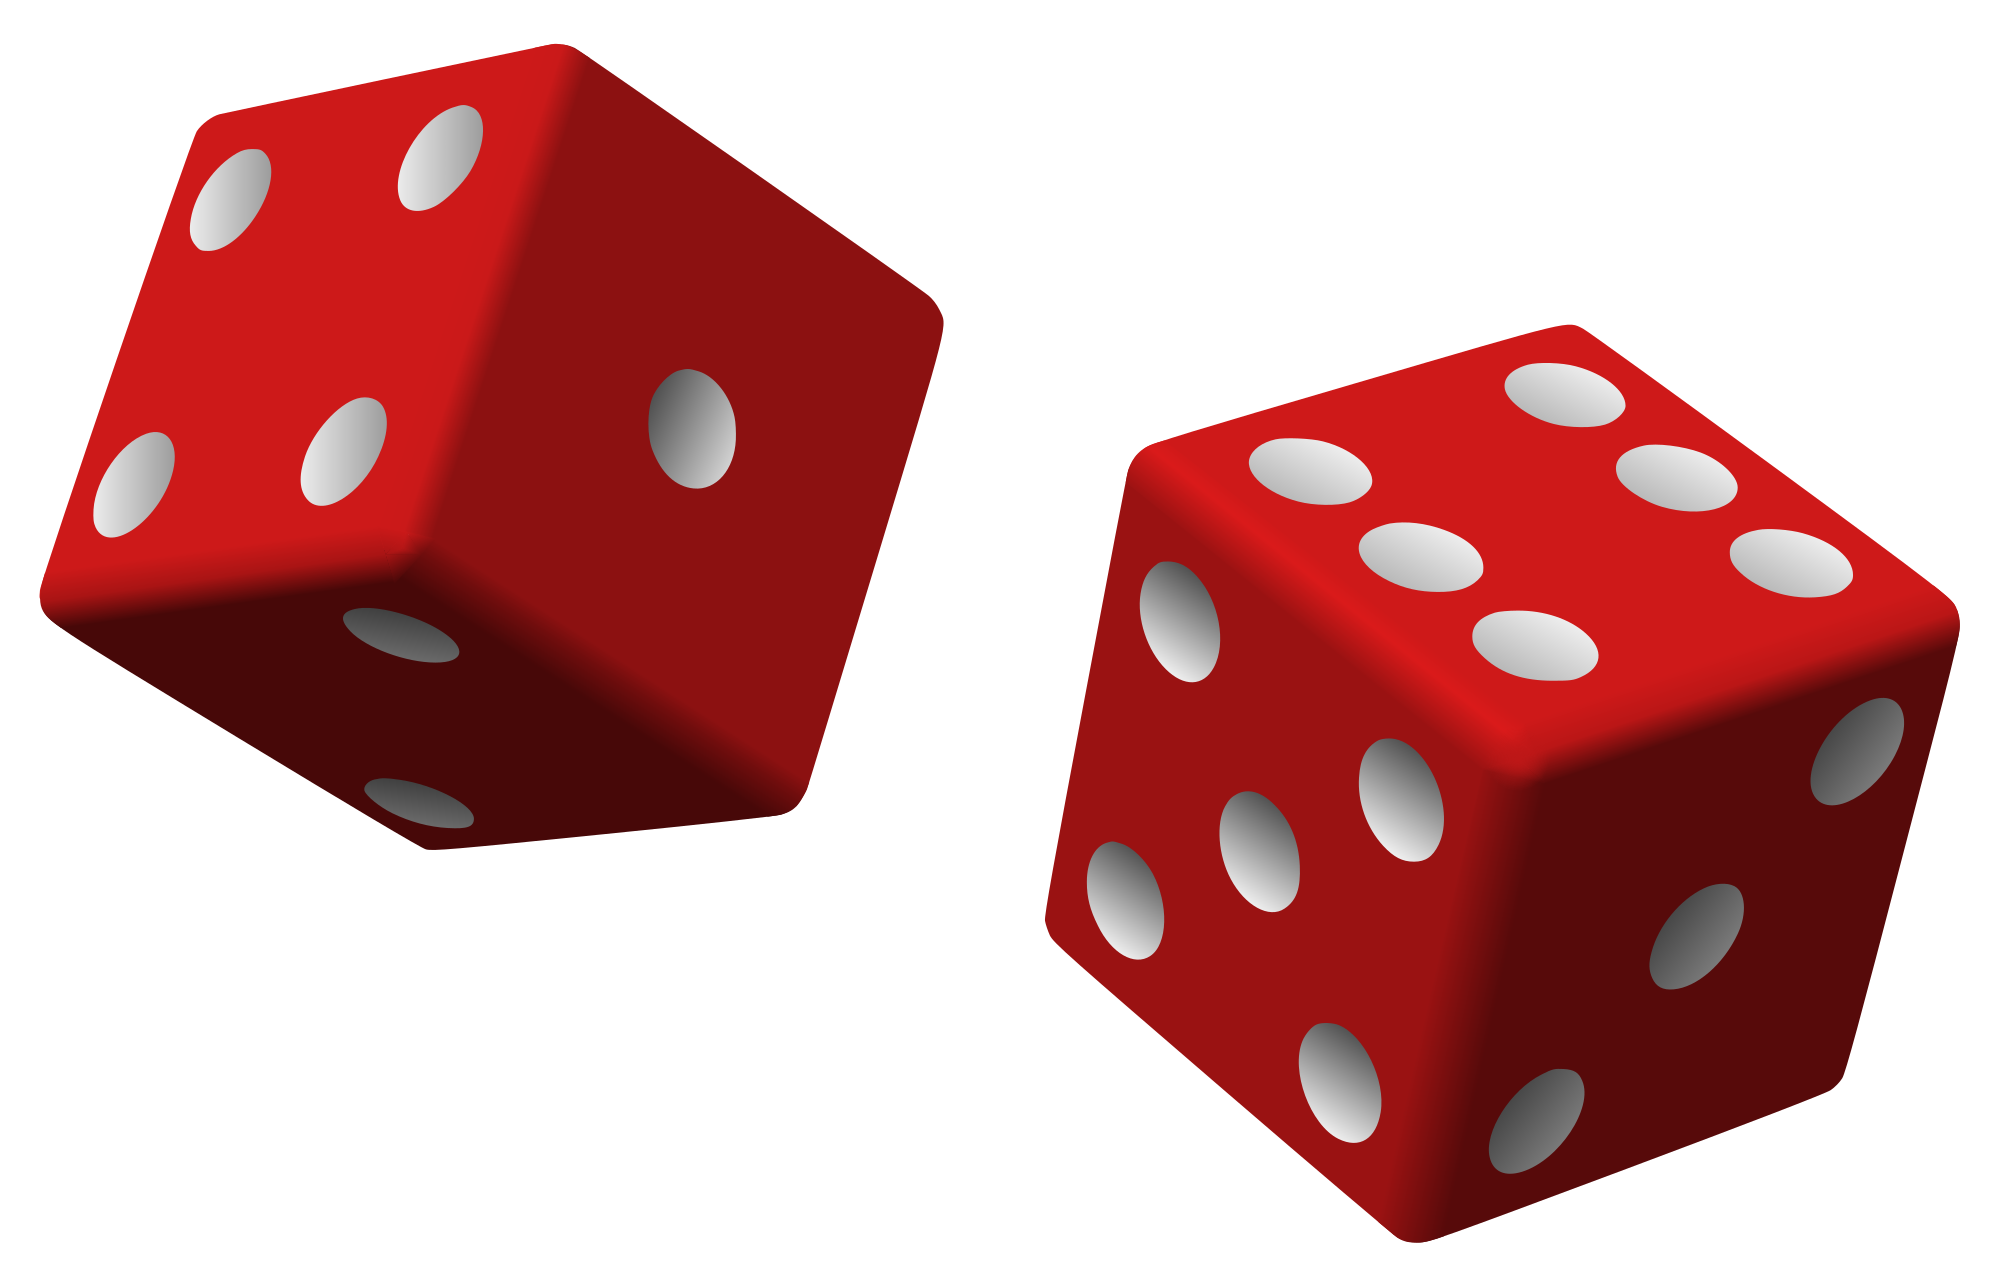 2000x1282 Filetwo Red Dice 01.svg